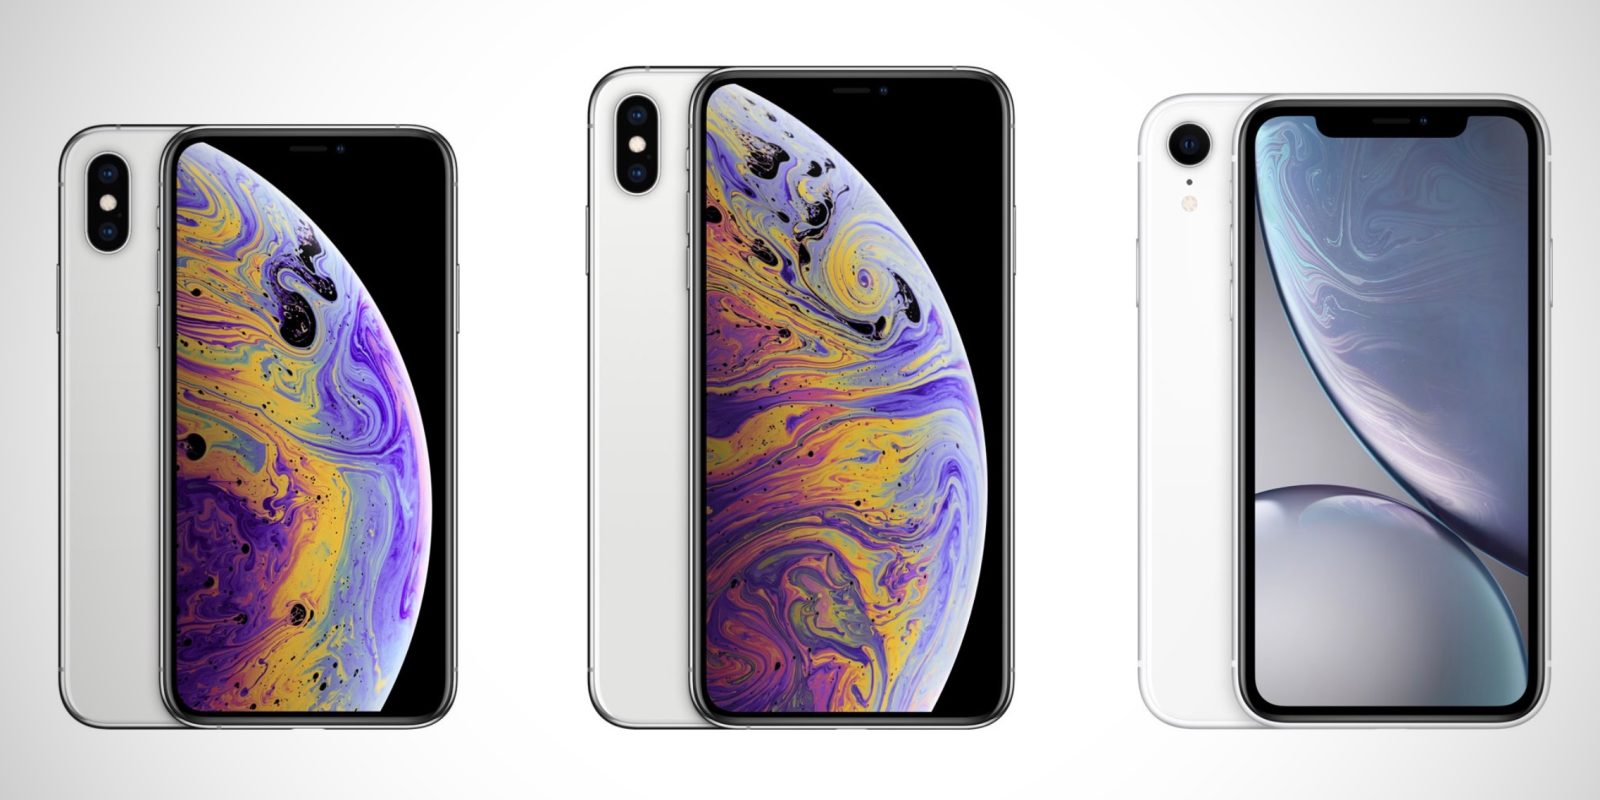 new arrival 88d1b b38d9 iPhone XR vs iPhone XS: Which should you buy? - 9to5Mac